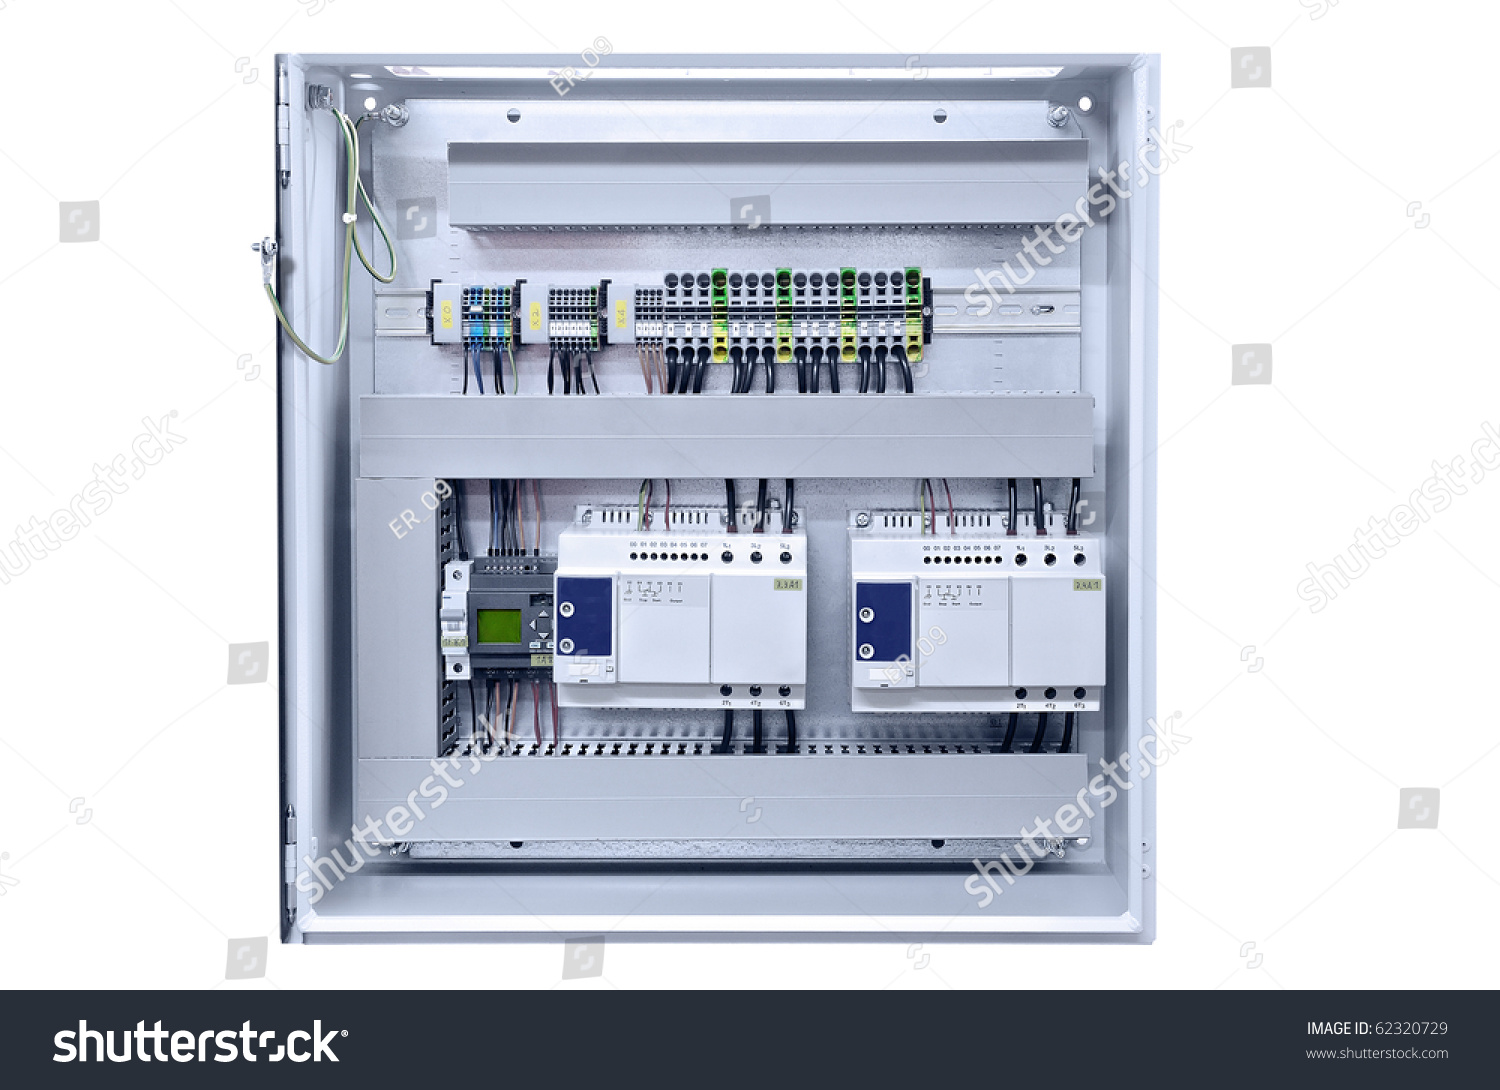 Electricity Distribution Box Wires Circuit Breakers Stock Photo Fuse With And